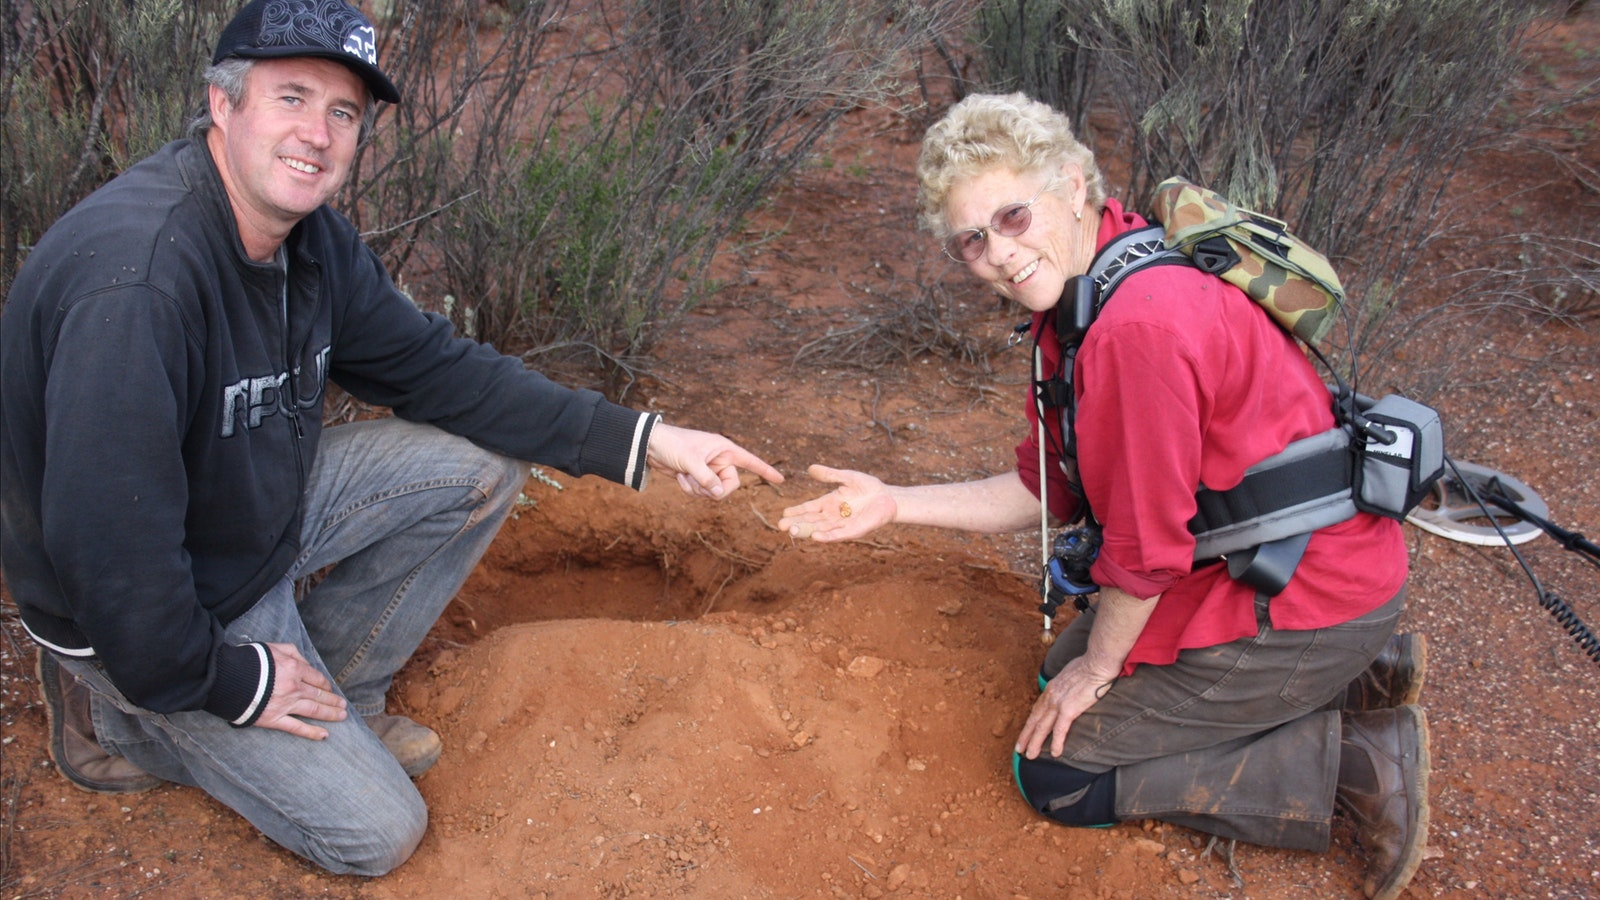 Gold and Relics Gold Prospecting Adventure Tours